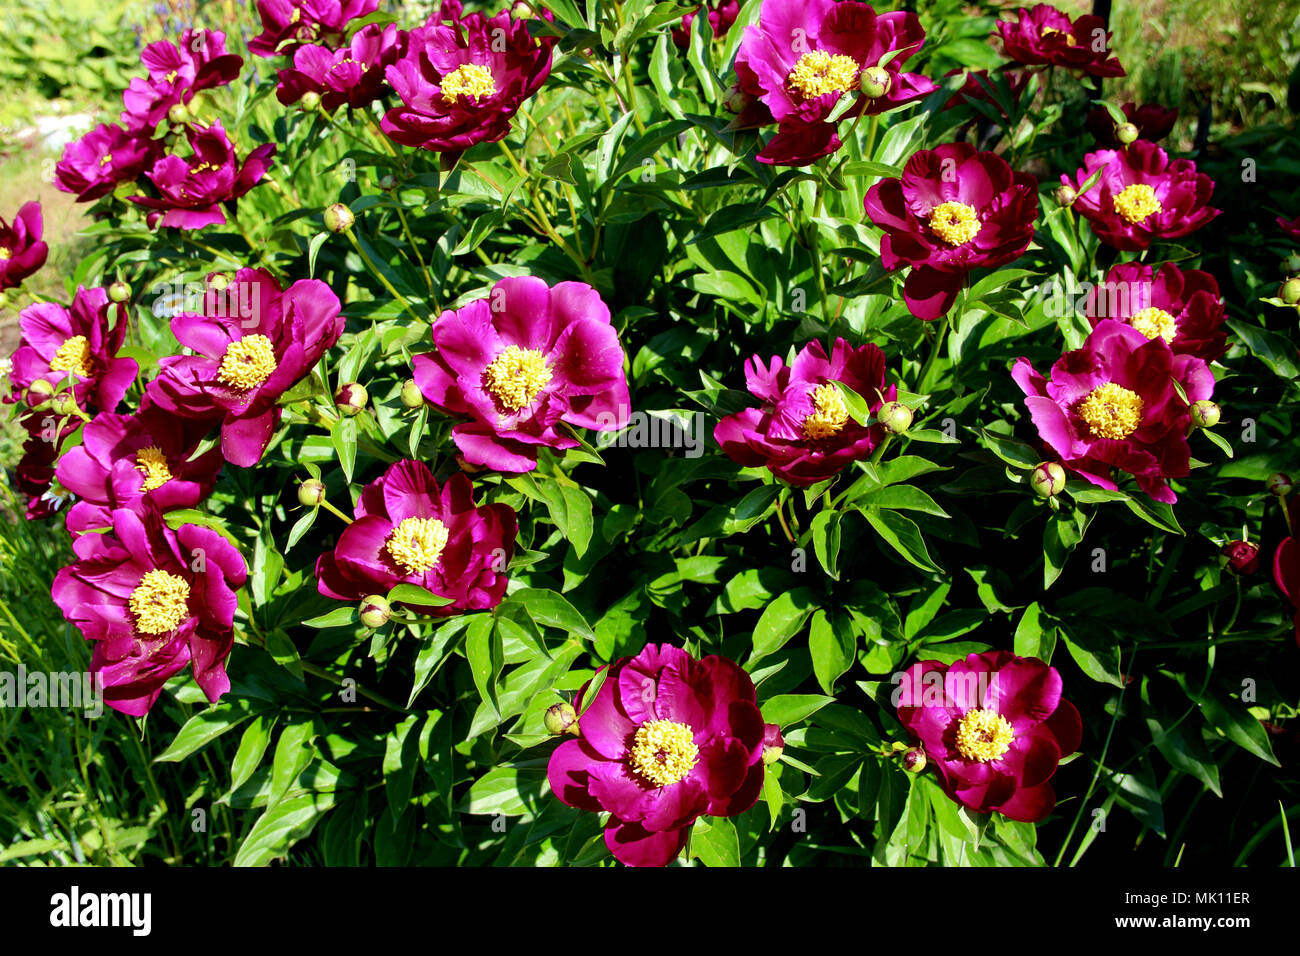 View above on the group of red flowers with yellow cores on green leaves background - Stock Image